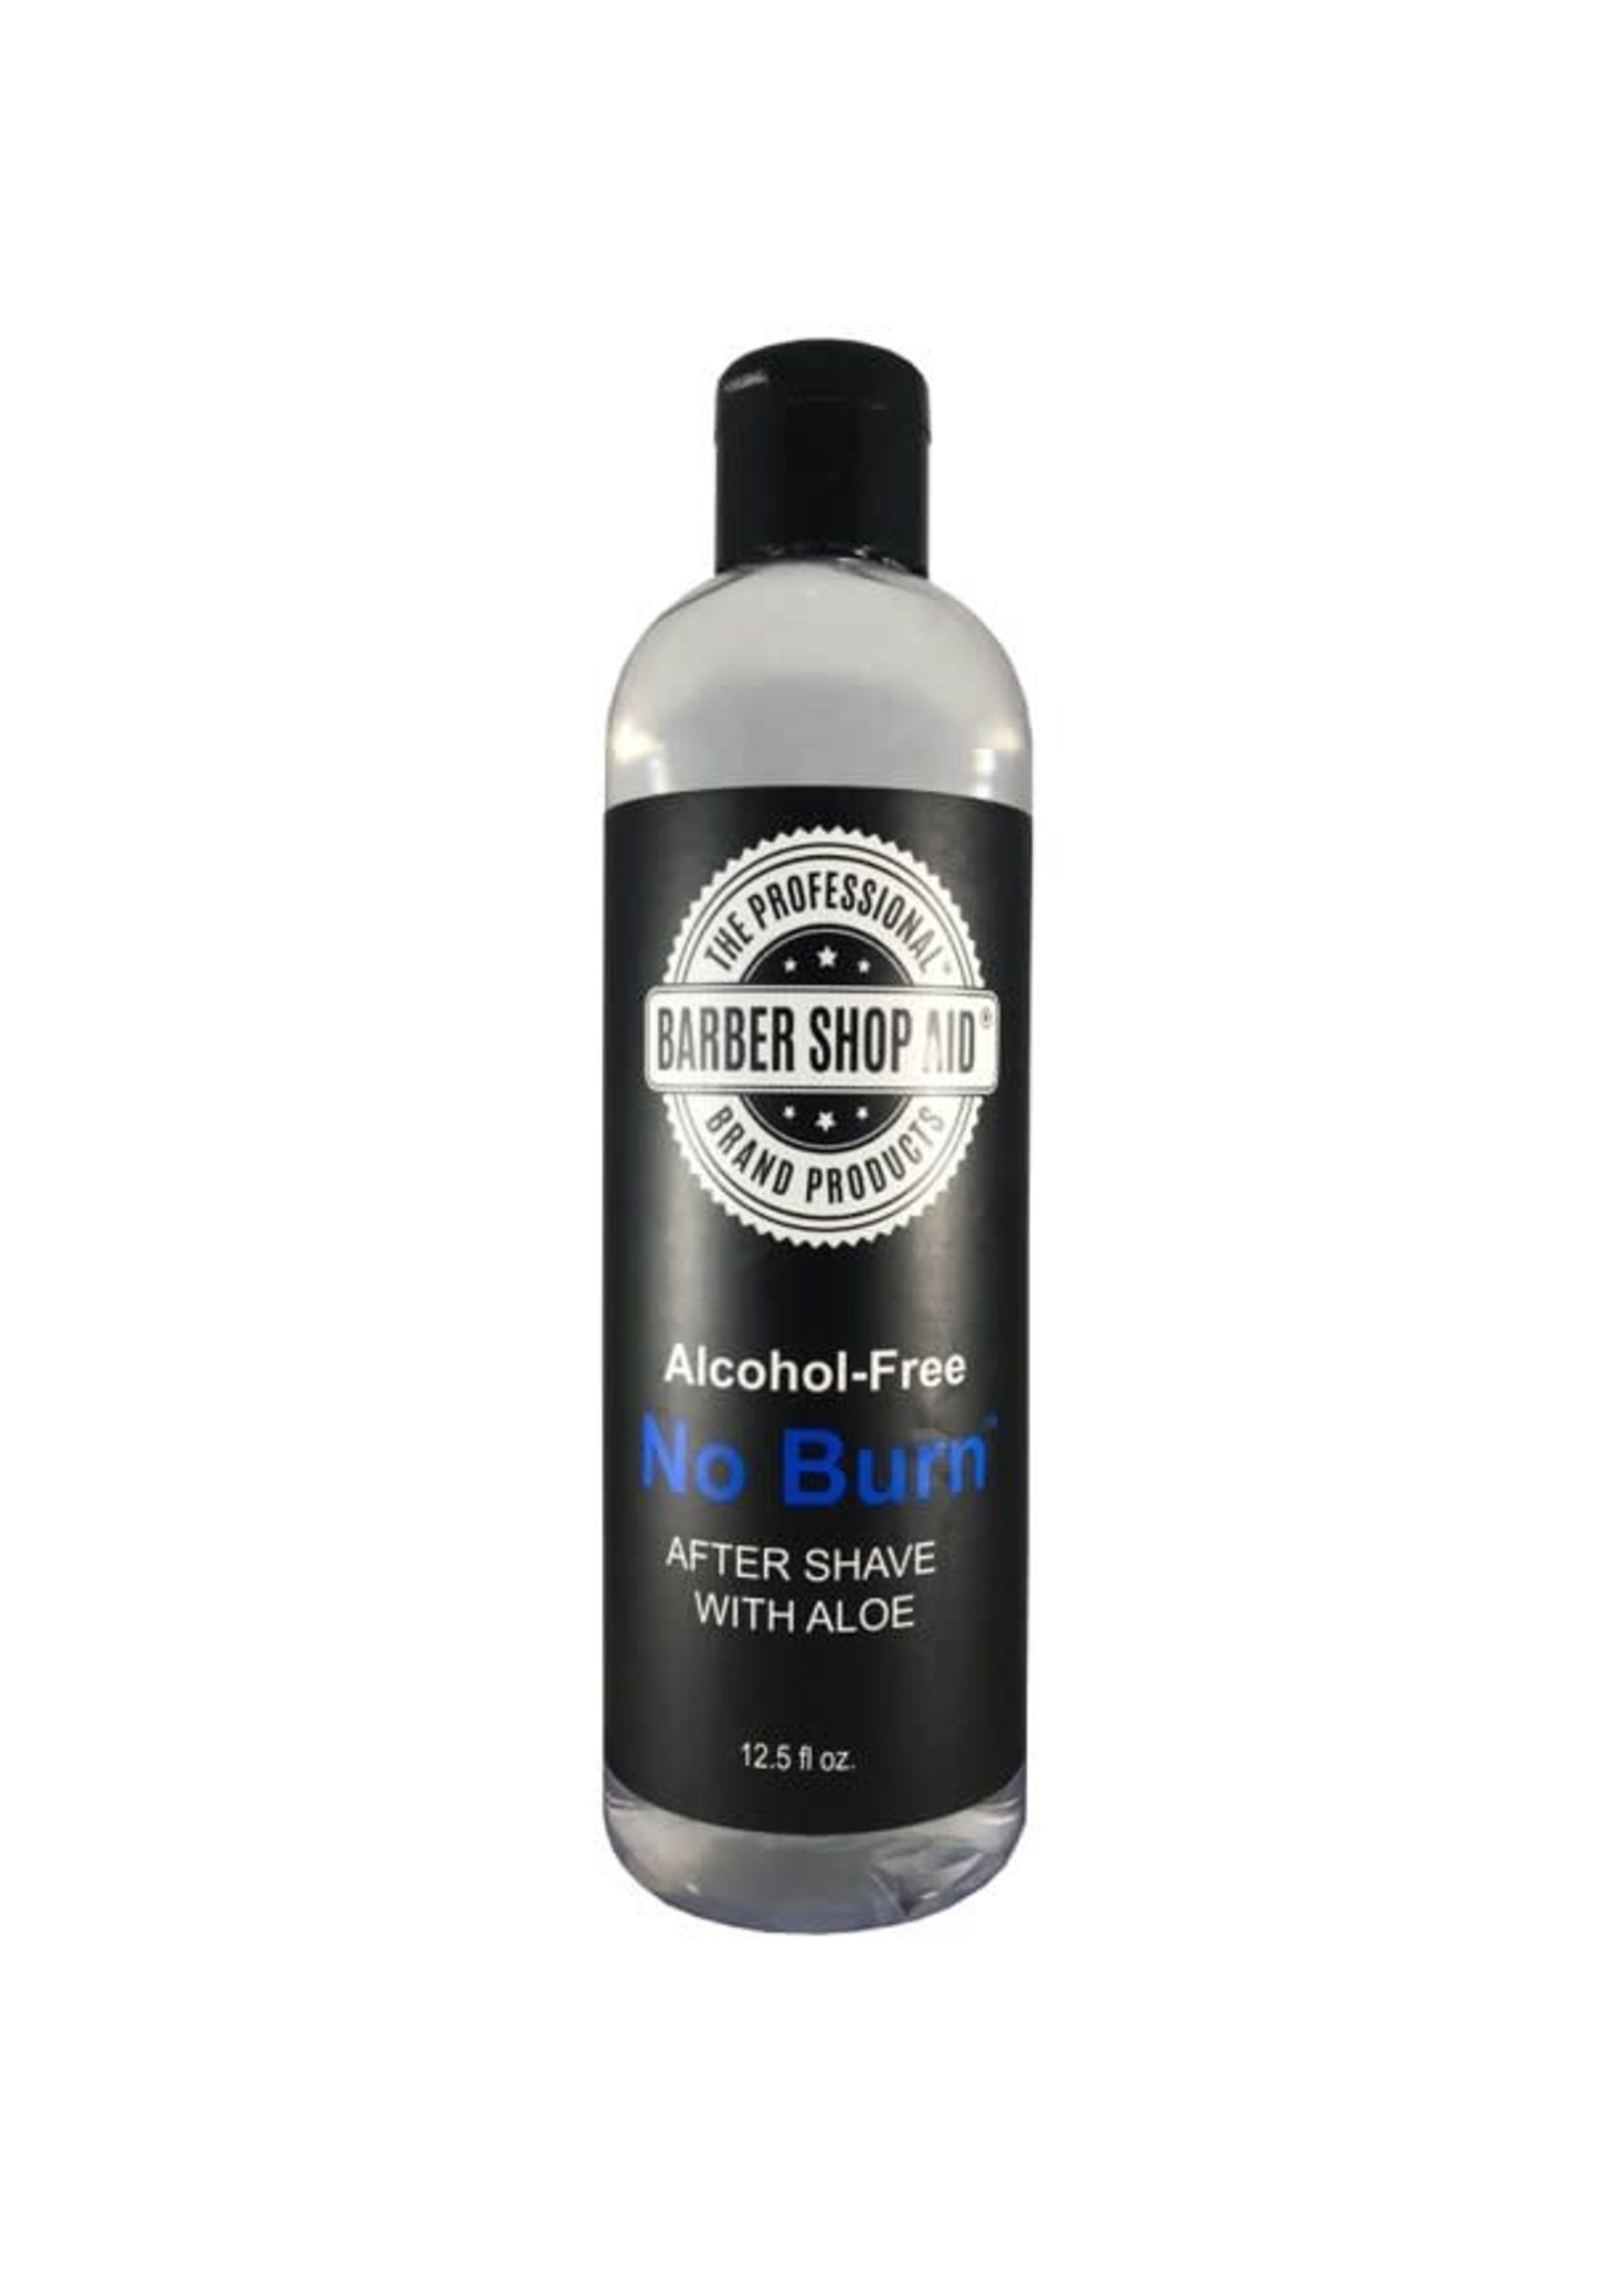 Barber Shop Aid No Burn After Shave with Aloe